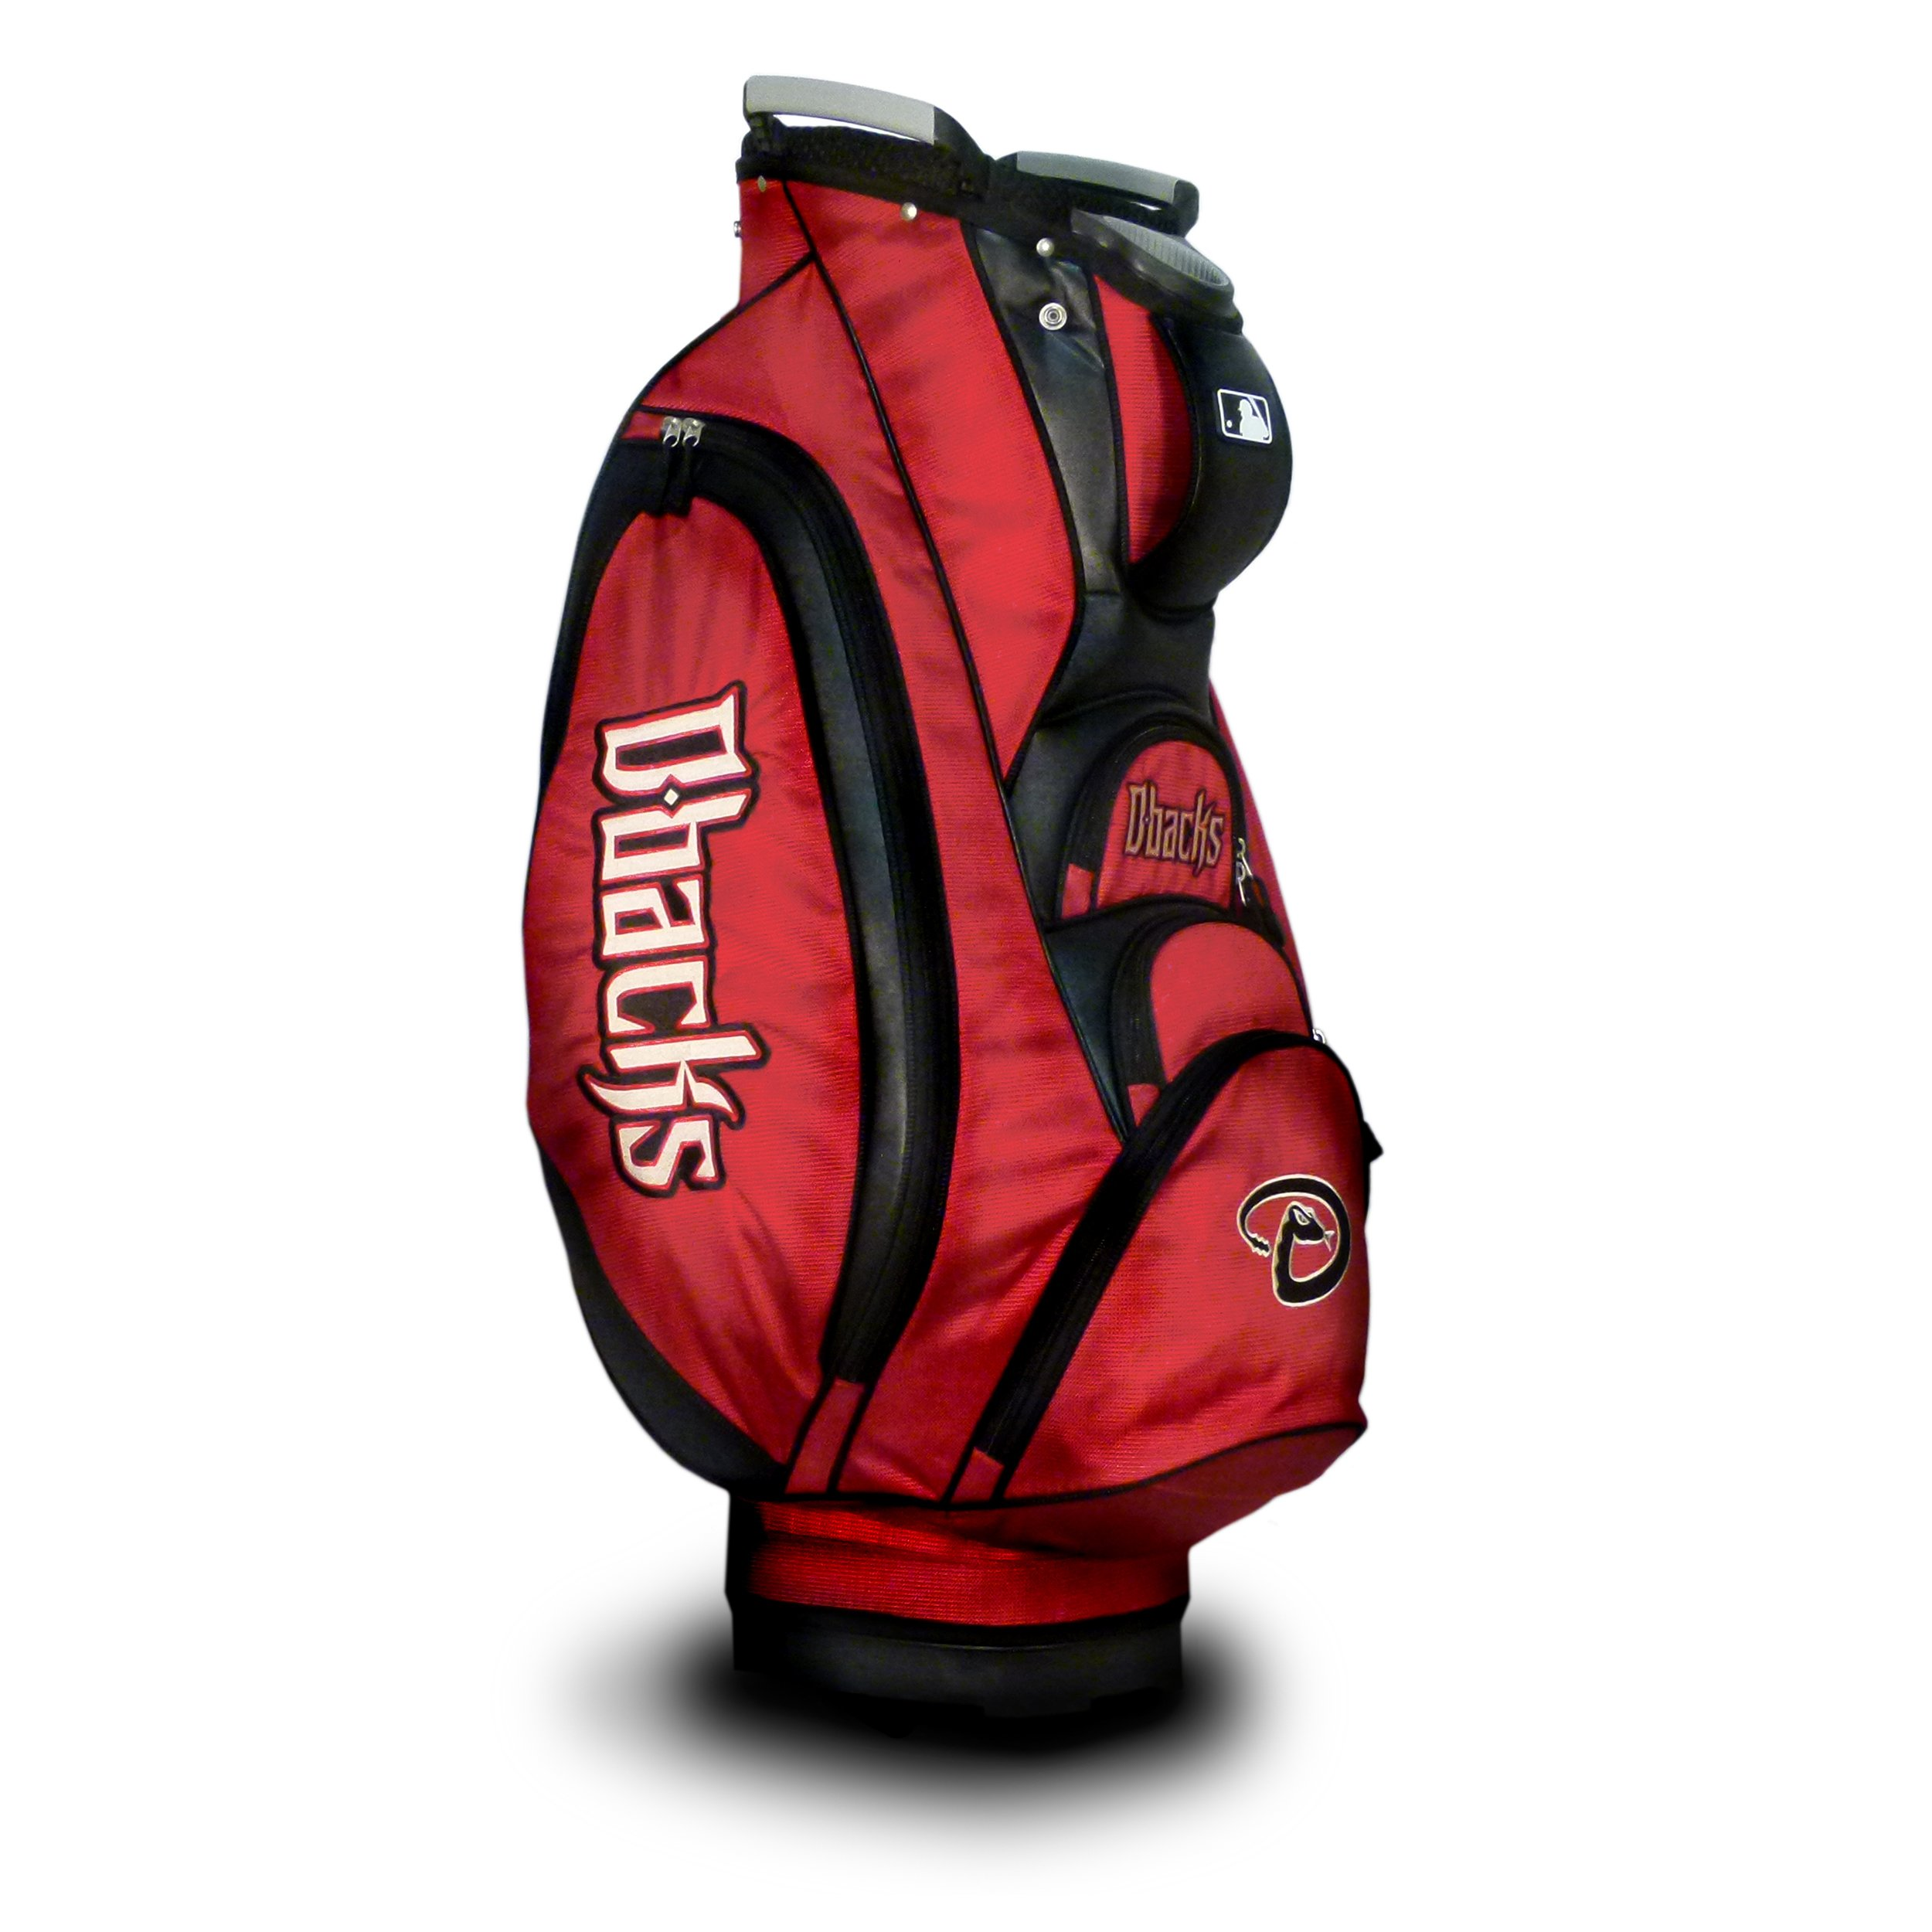 Team Golf MLB Arizona Diamondbacks Victory Golf Cart Bag, 10-way Top with Integrated Dual Handle & External Putter Well, Cooler Pocket, Padded Strap, Umbrella Holder & Removable Rain Hood